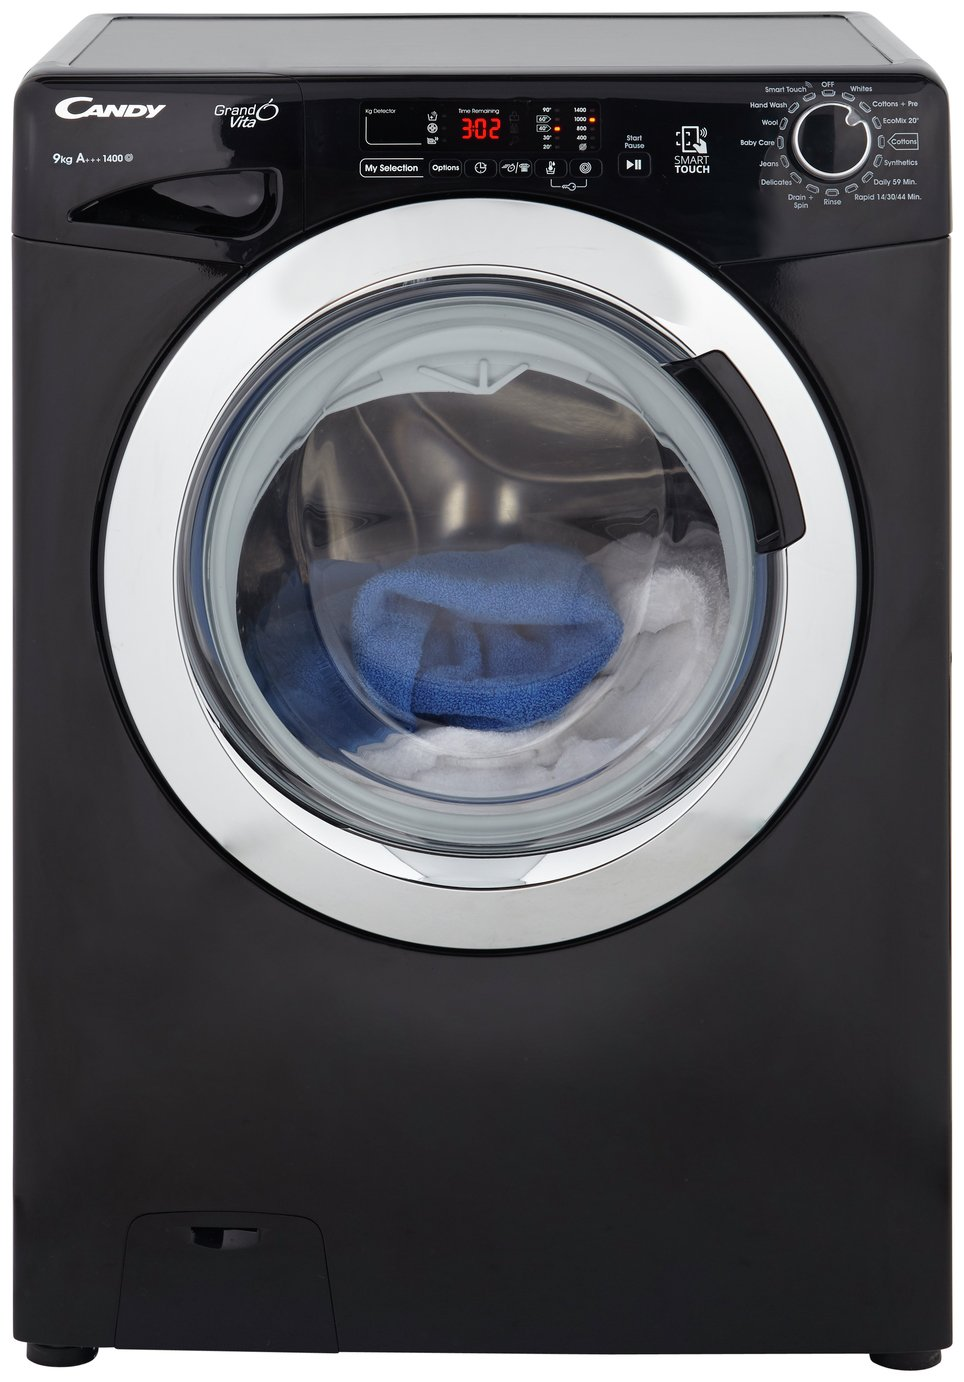 Candy GVS149DC3B 9KG 1400 Spin Washing Machine - Black